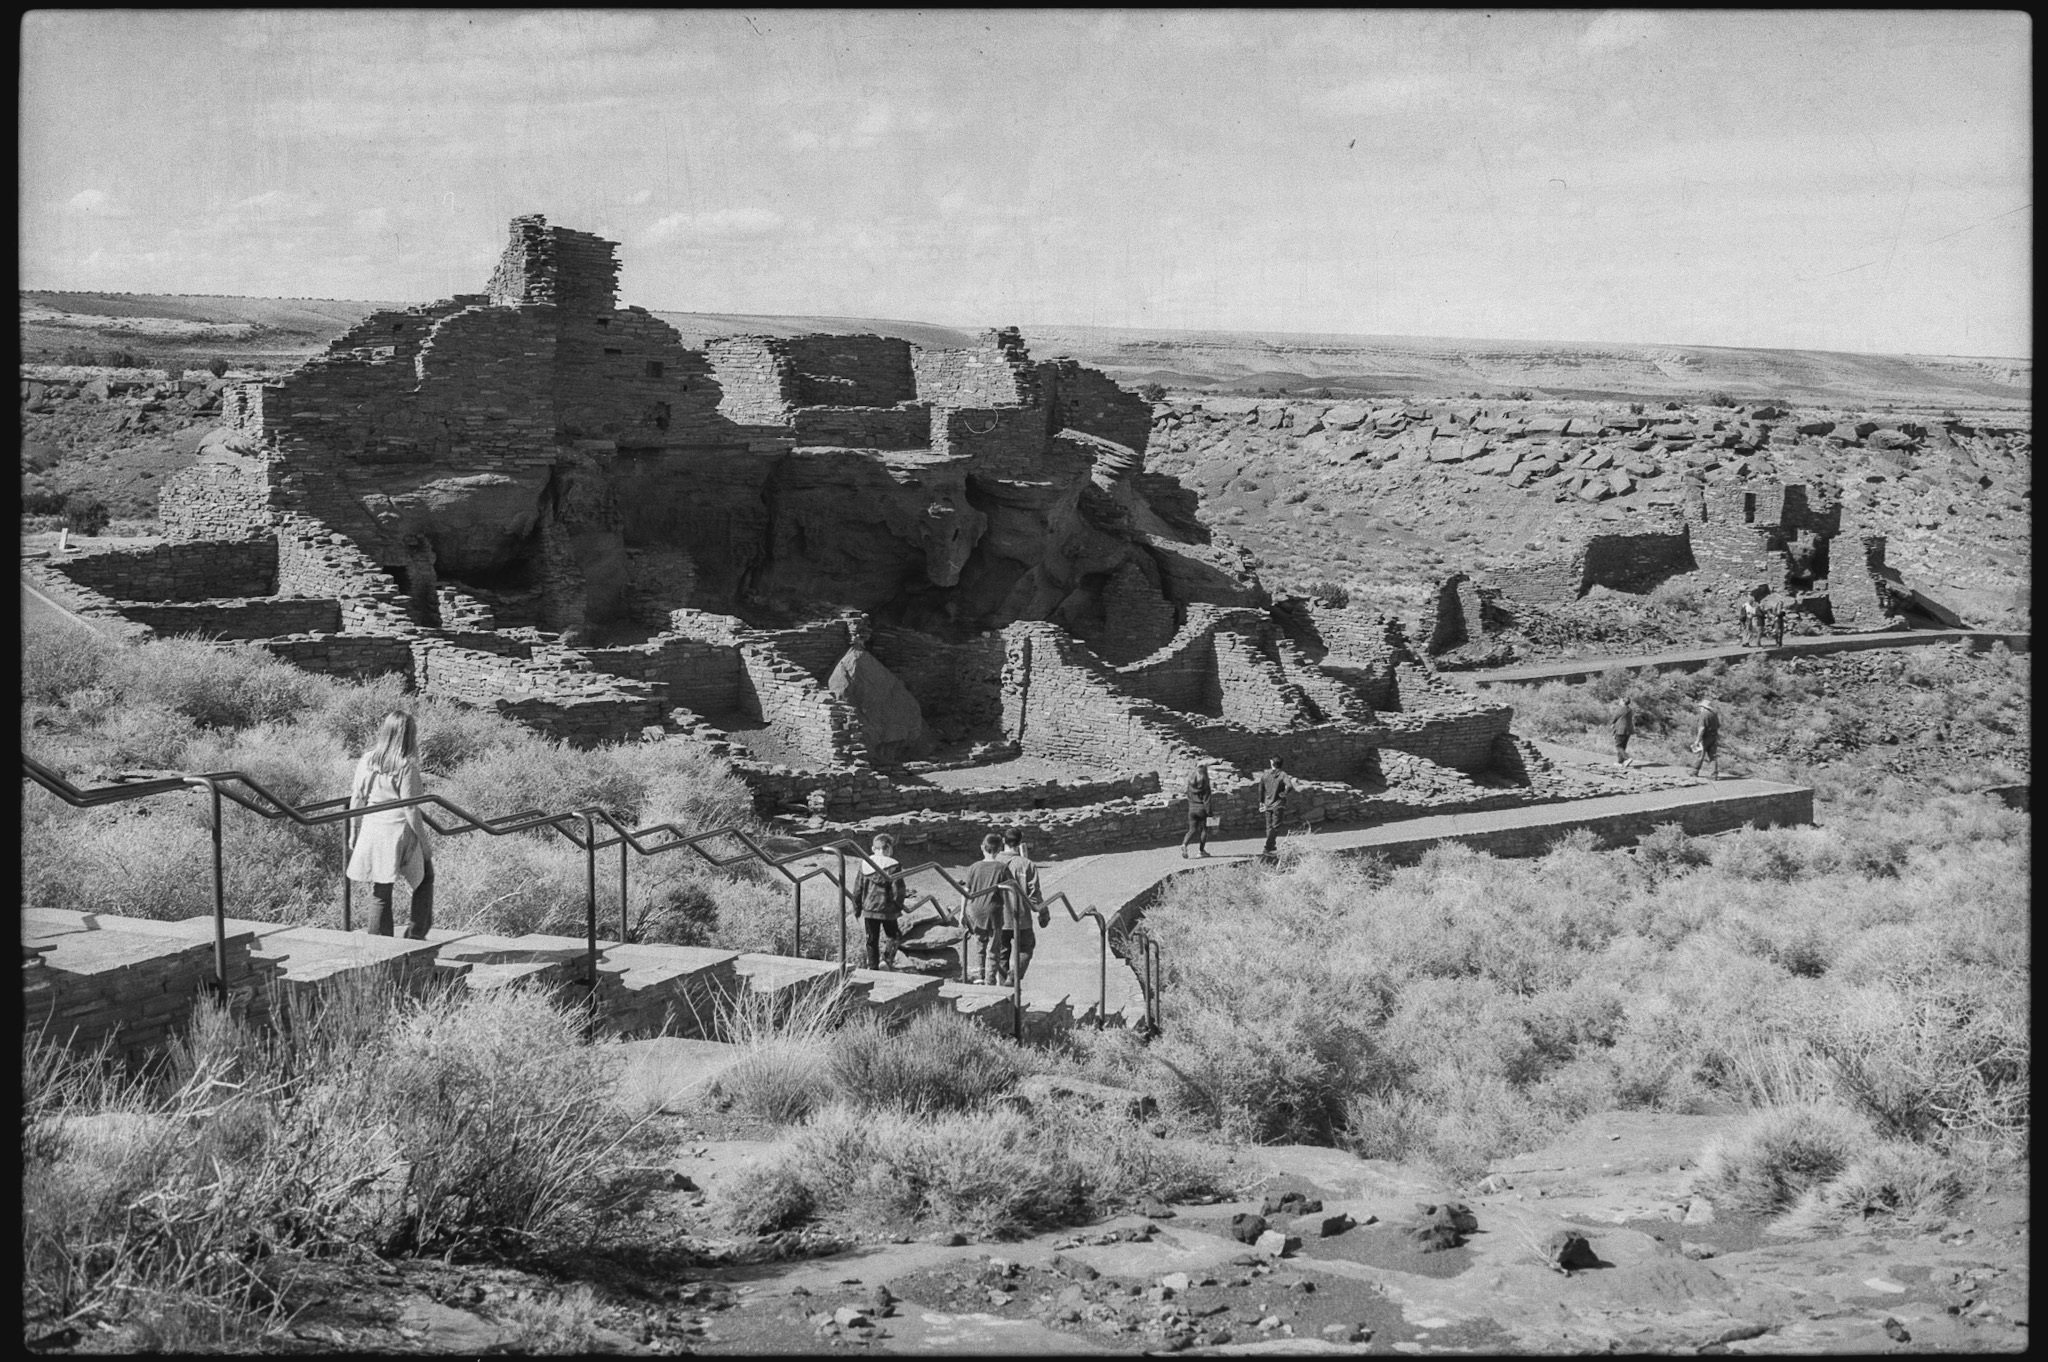 A broad view of the pueblos at Wupatki National Monument, Coconino County, Arizona